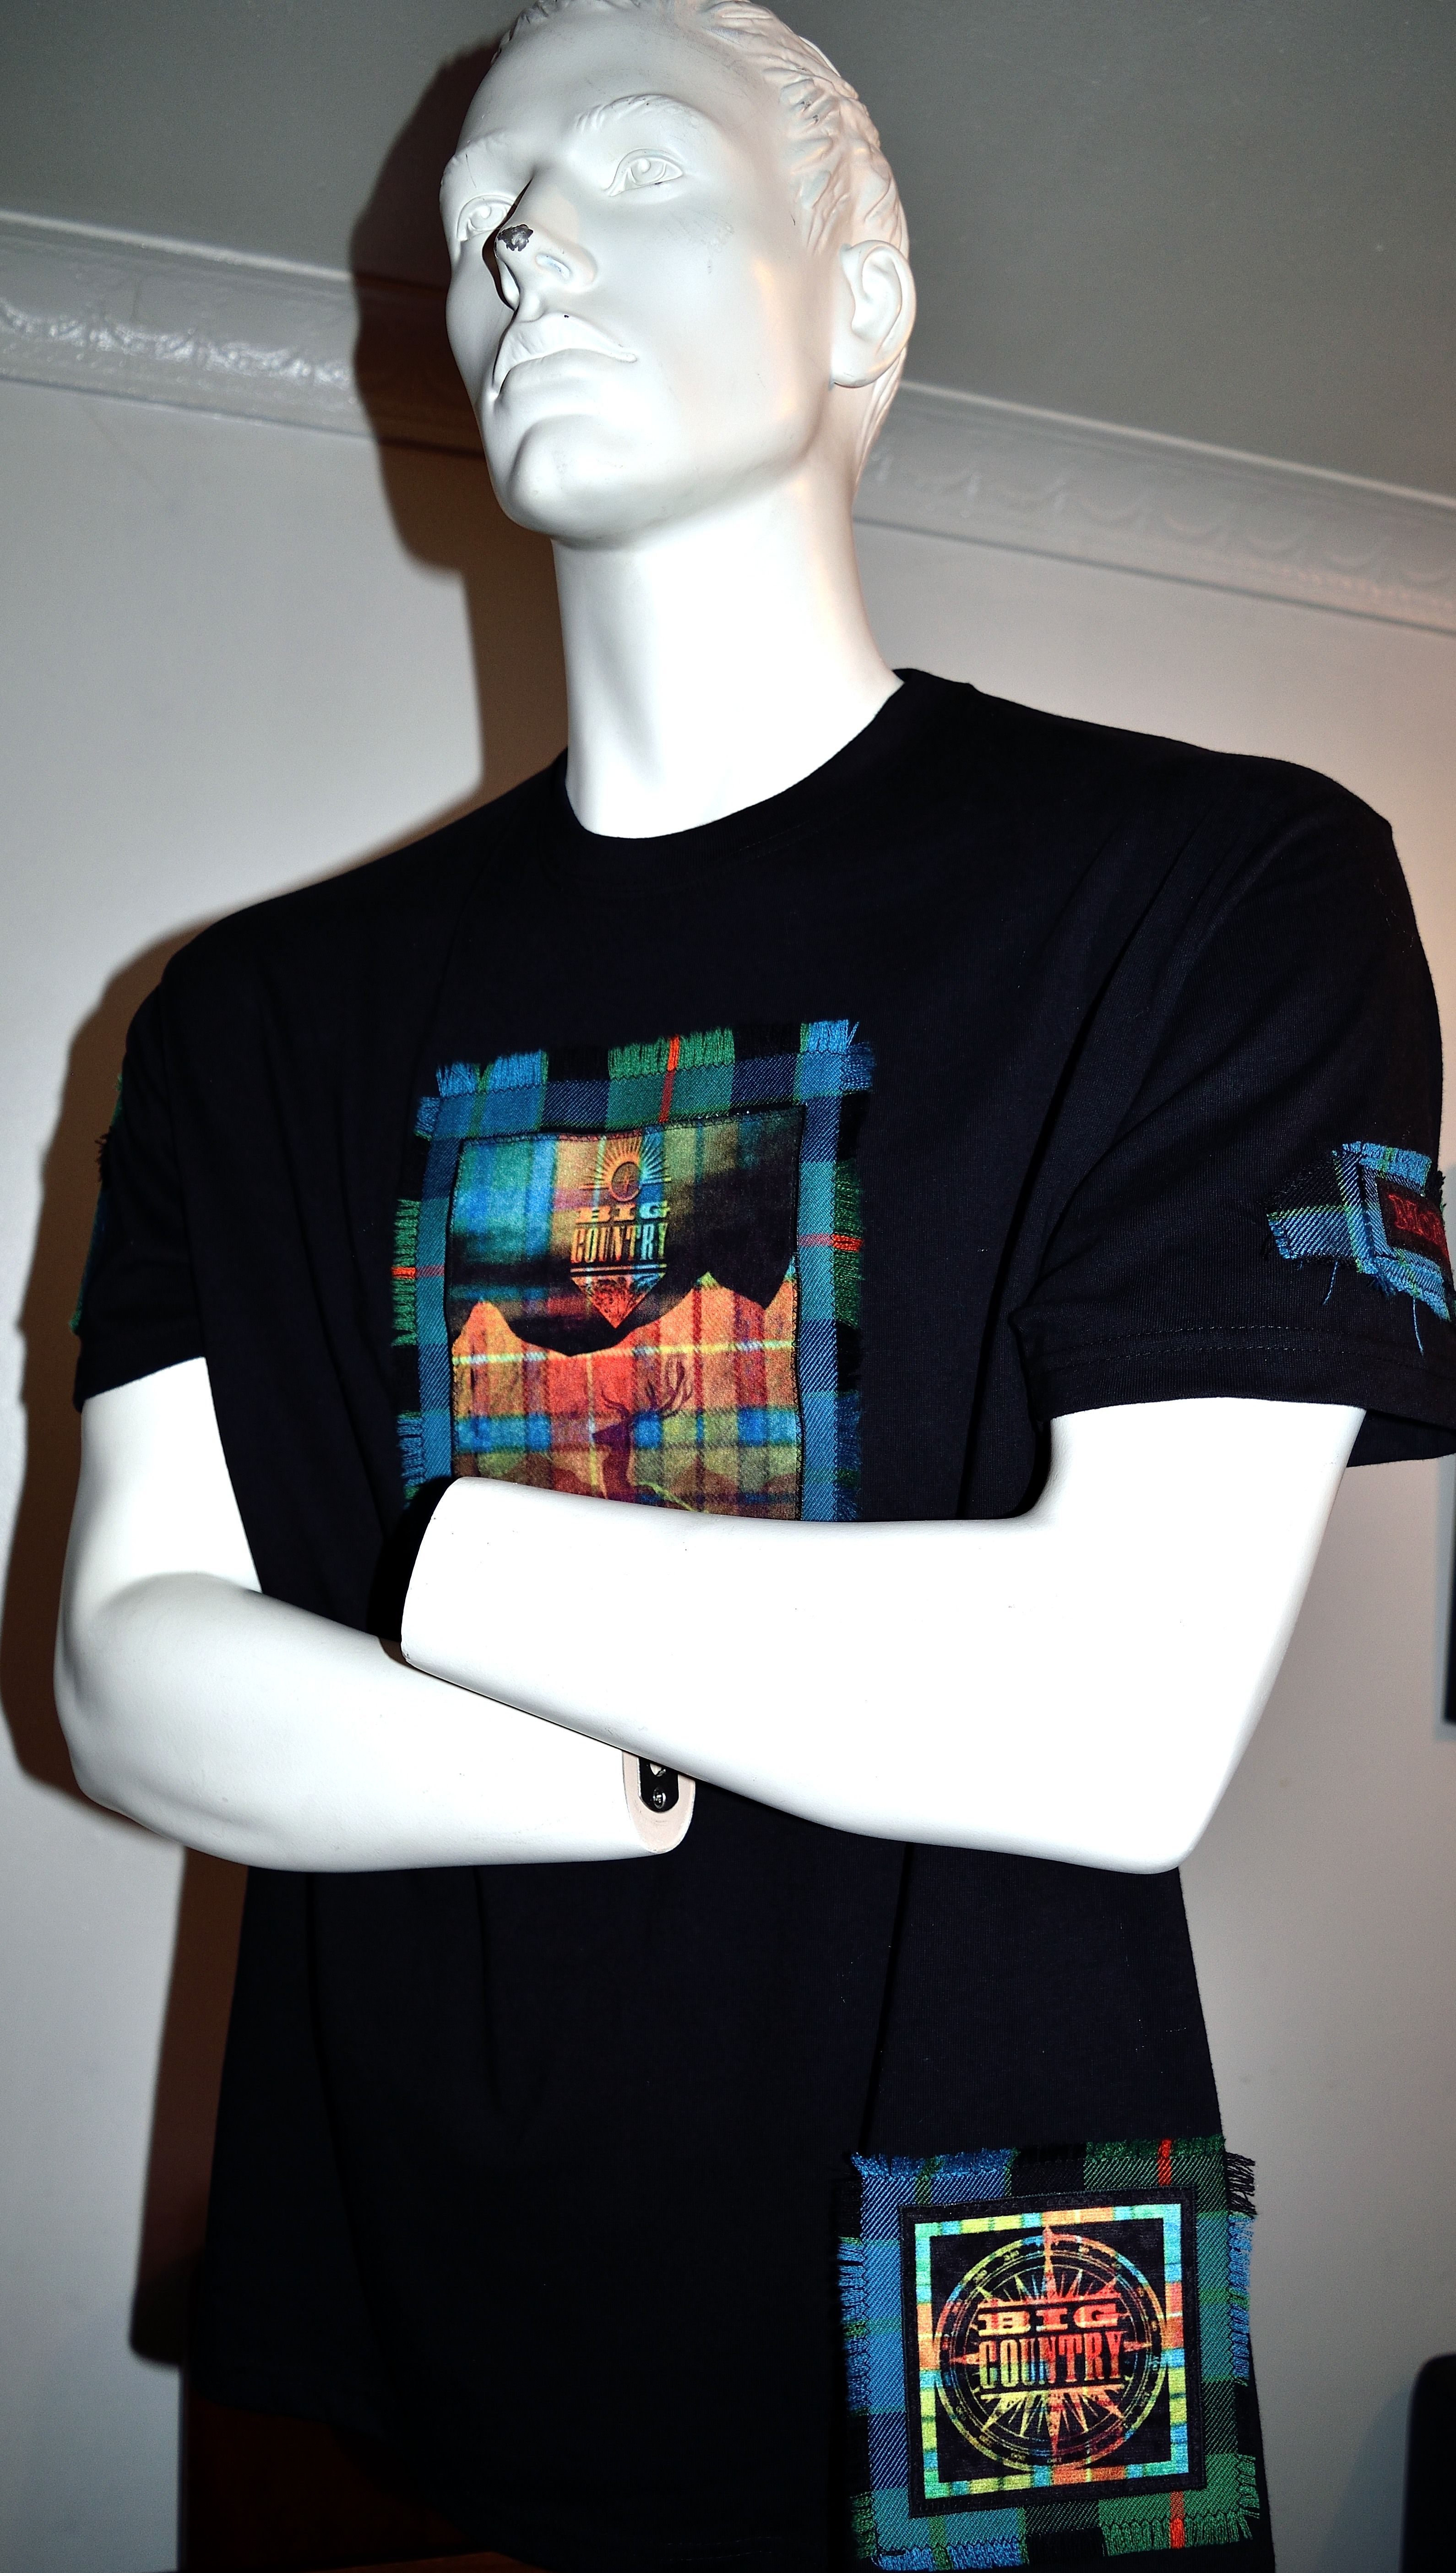 Big Country custom made t-shirt by MoNkA.  Beautiful colours created using sublimation printing on velvet fabric, sewn onto tartan.    https://www.facebook.com/monka.rocks/